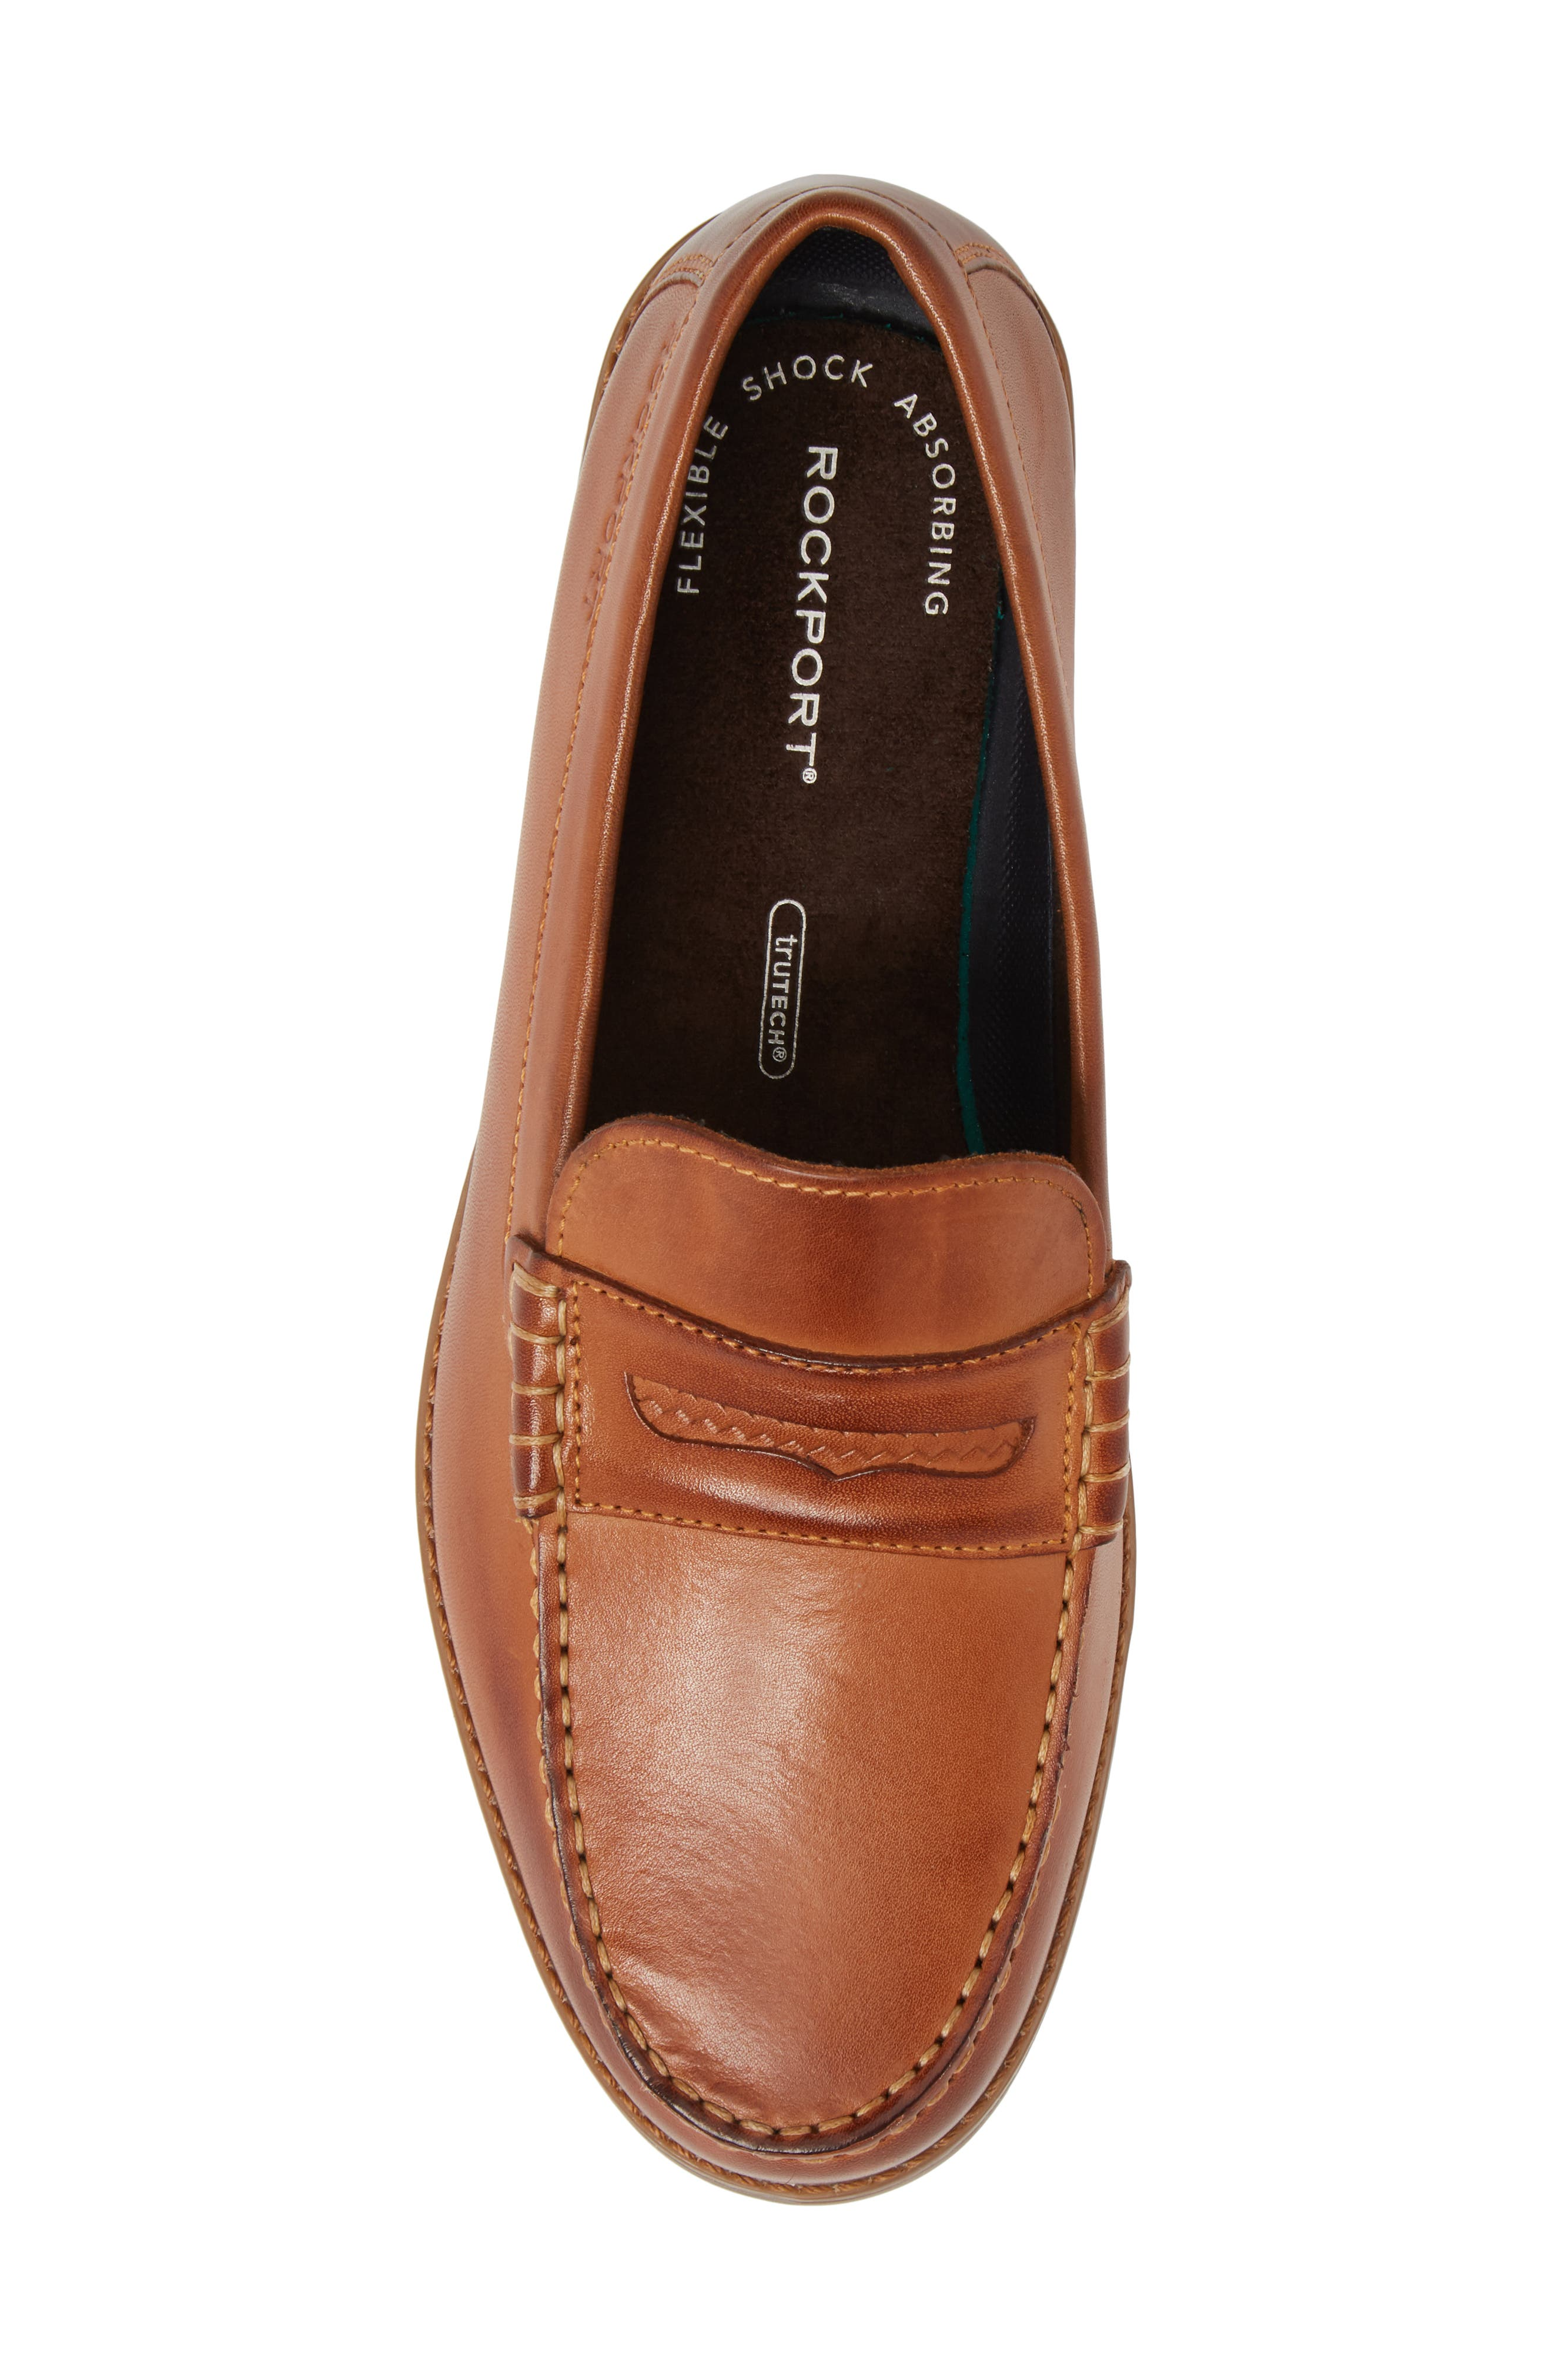 Cayleb Moc Toe Penny Loafer,                             Alternate thumbnail 5, color,                             231